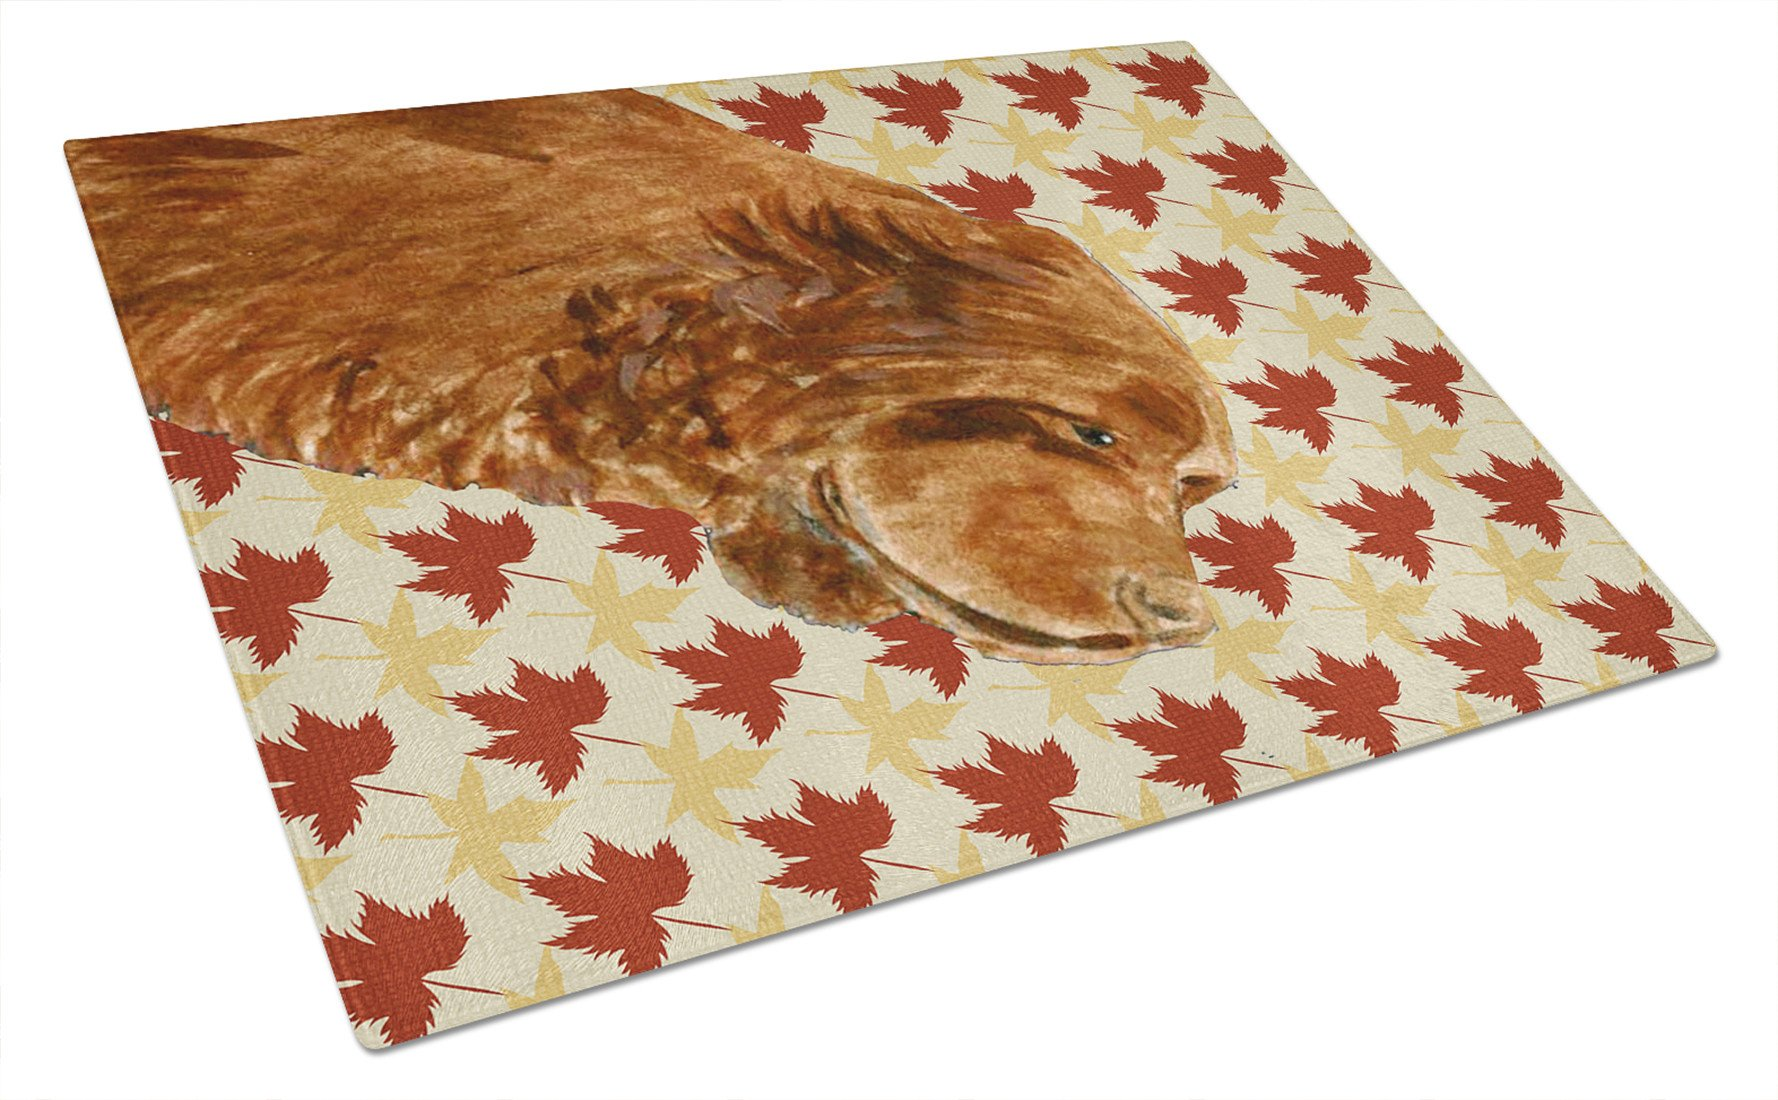 Sussex Spaniel Fall Leaves Portrait Glass Cutting Board Large by Caroline's Treasures